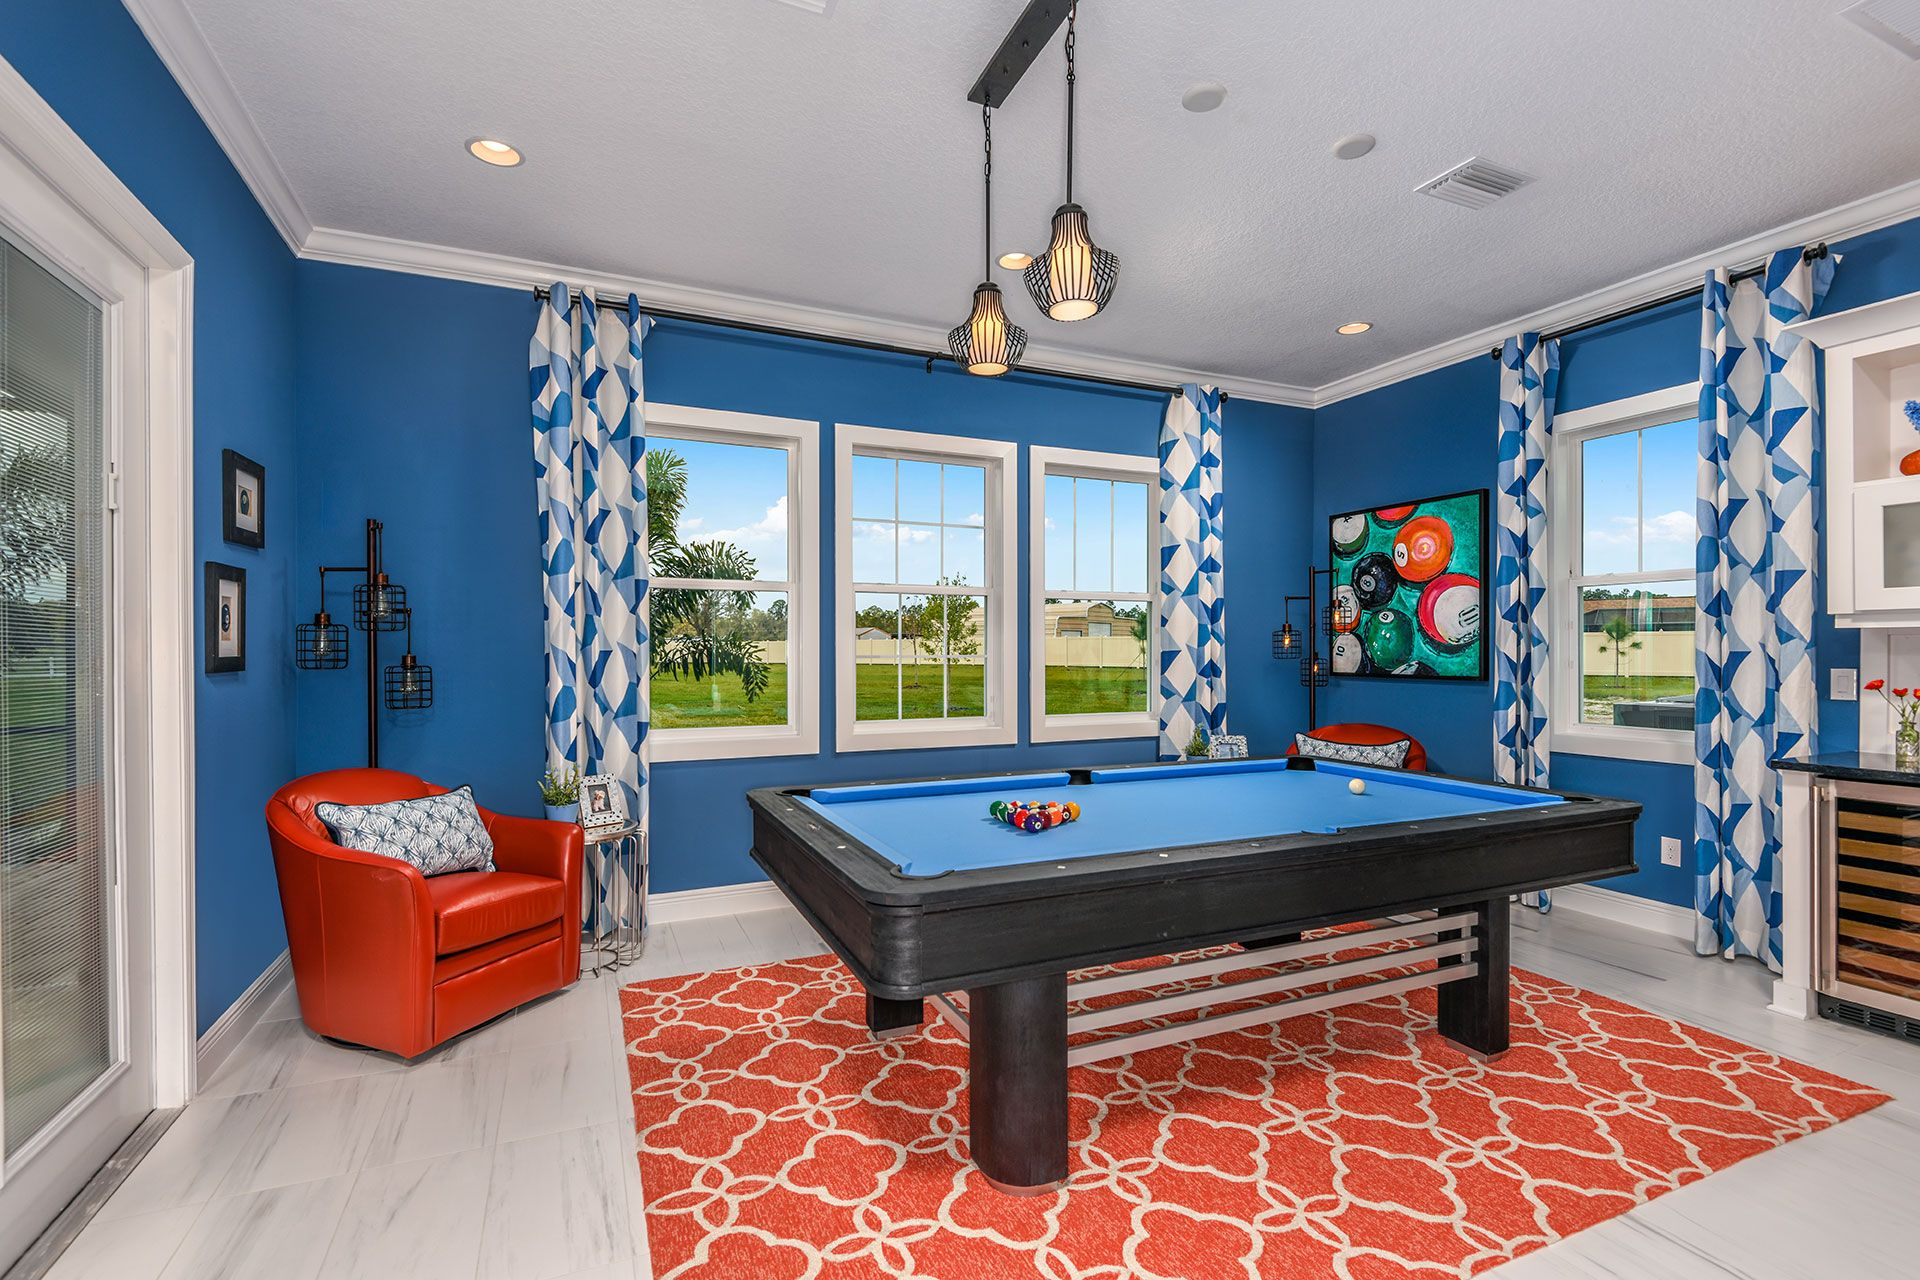 Living Area featured in the Key Largo II By Homes by WestBay in Tampa-St. Petersburg, FL